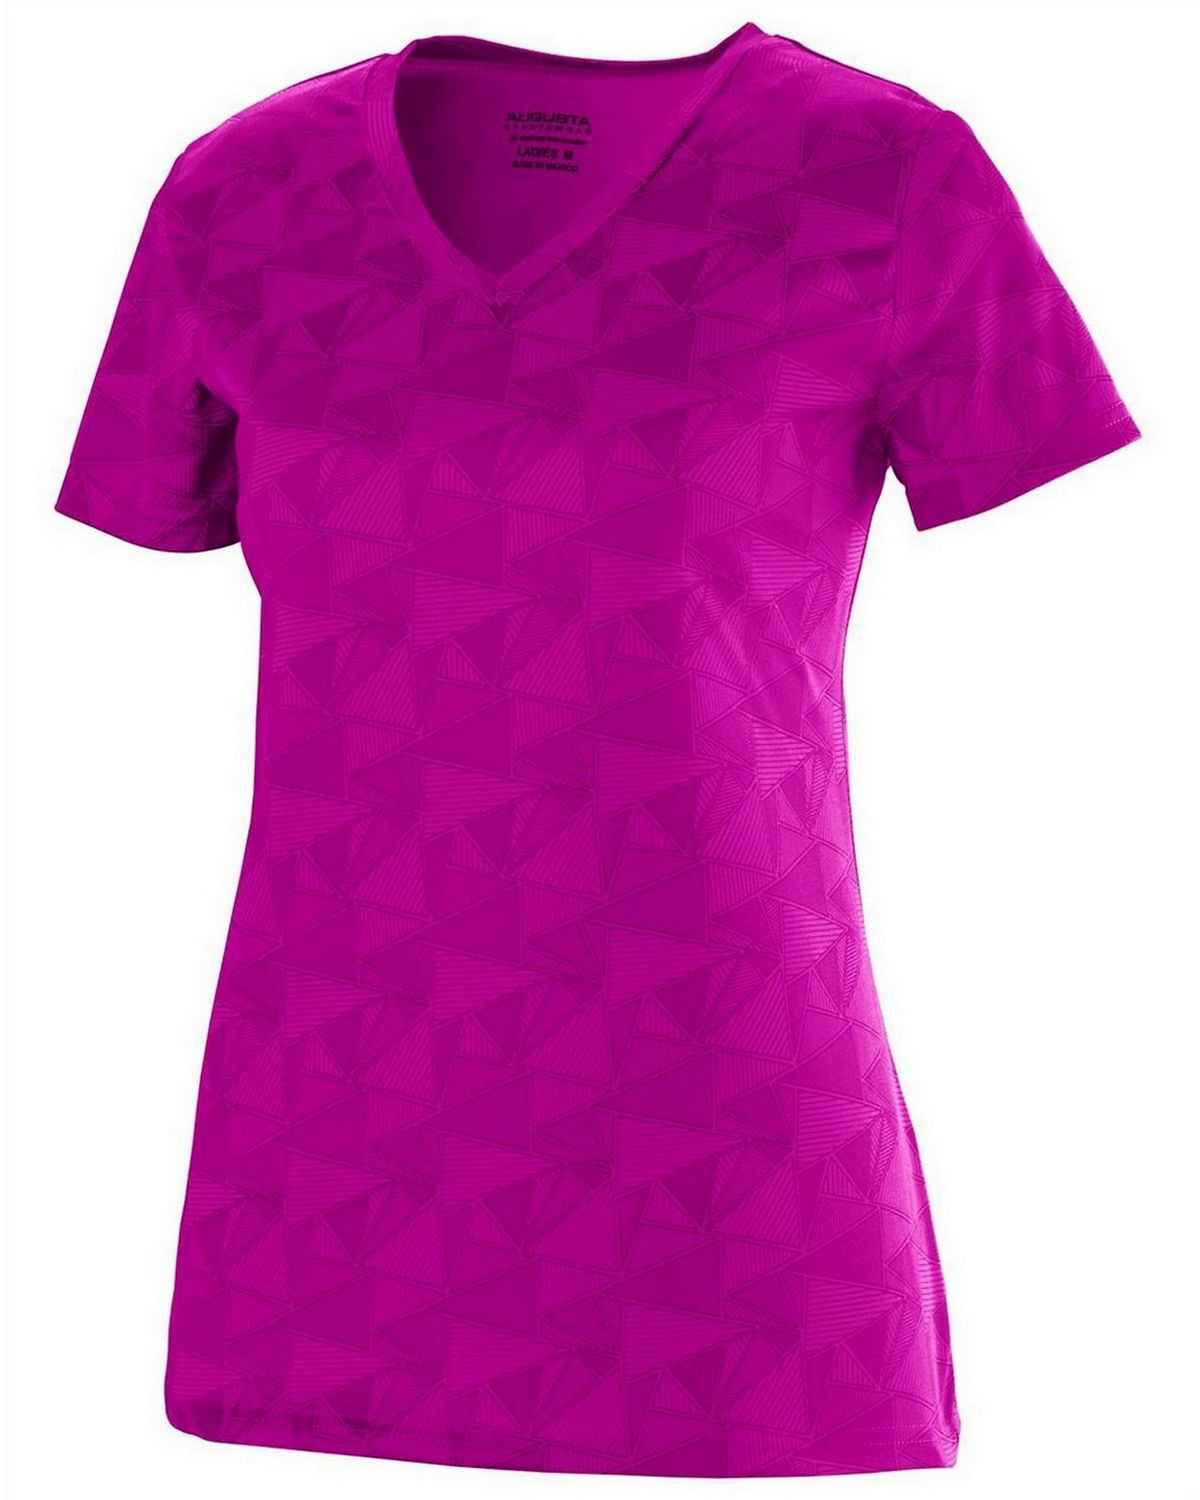 Augusta Sportswear 1793 Short-Sleeve T-Shirt - Power Pink/Black - L 1793